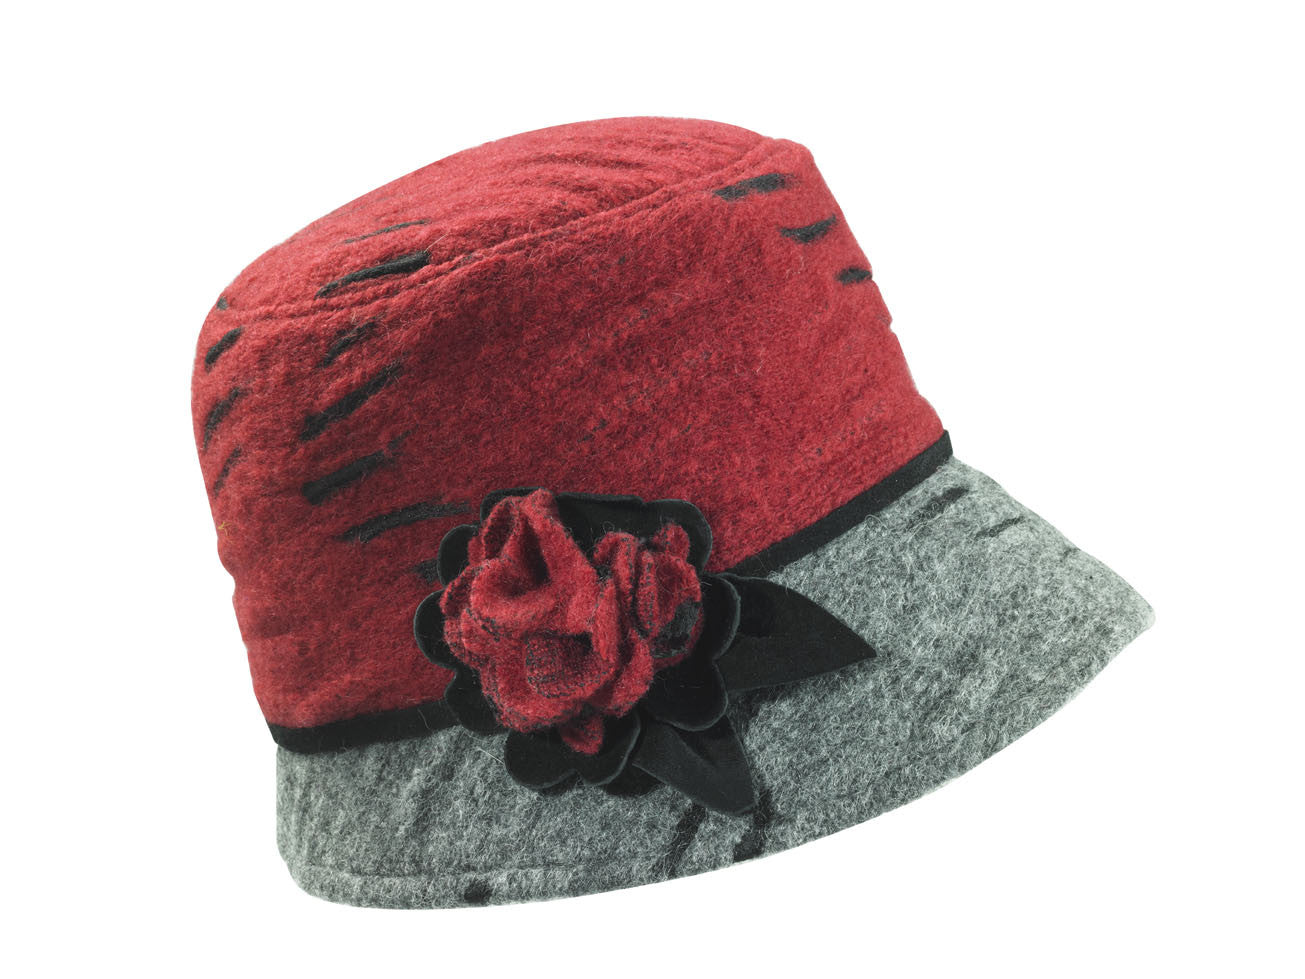 eb6df84834e THE ROSE - LADIES BUCKET HAT FROM EUROPE - SAVE 50% LAST CHANCE - ONLY 2  LEFT!